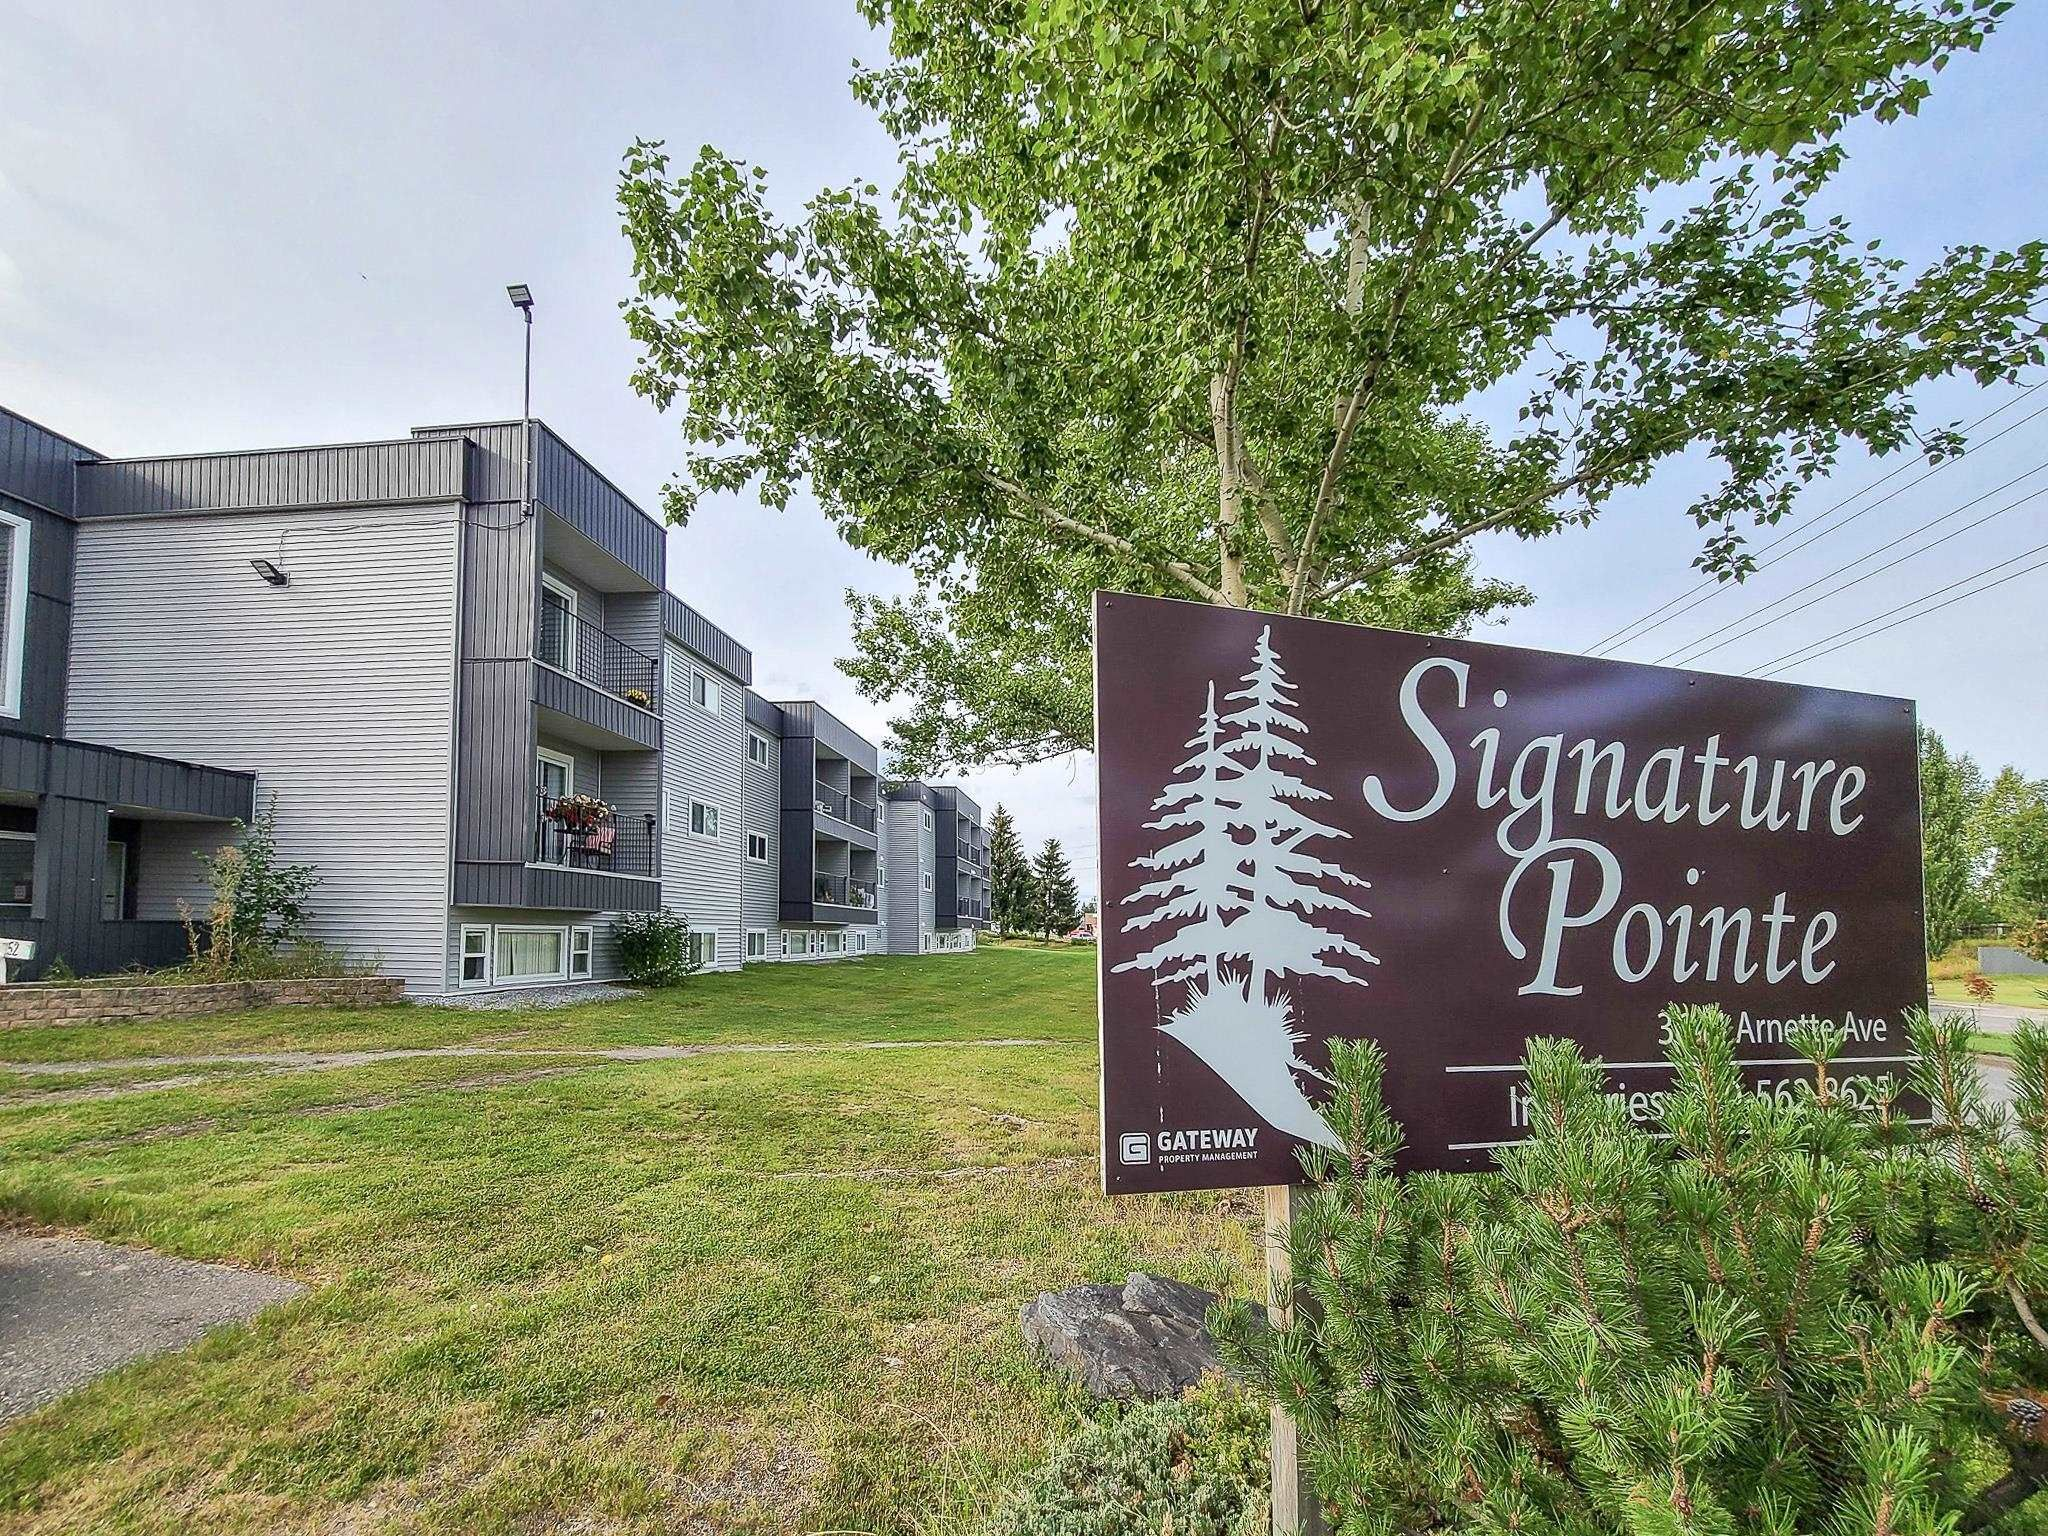 """Main Photo: 307 3644 ARNETT Avenue in Prince George: Pinecone Condo for sale in """"PINECONE"""" (PG City West (Zone 71))  : MLS®# R2621018"""